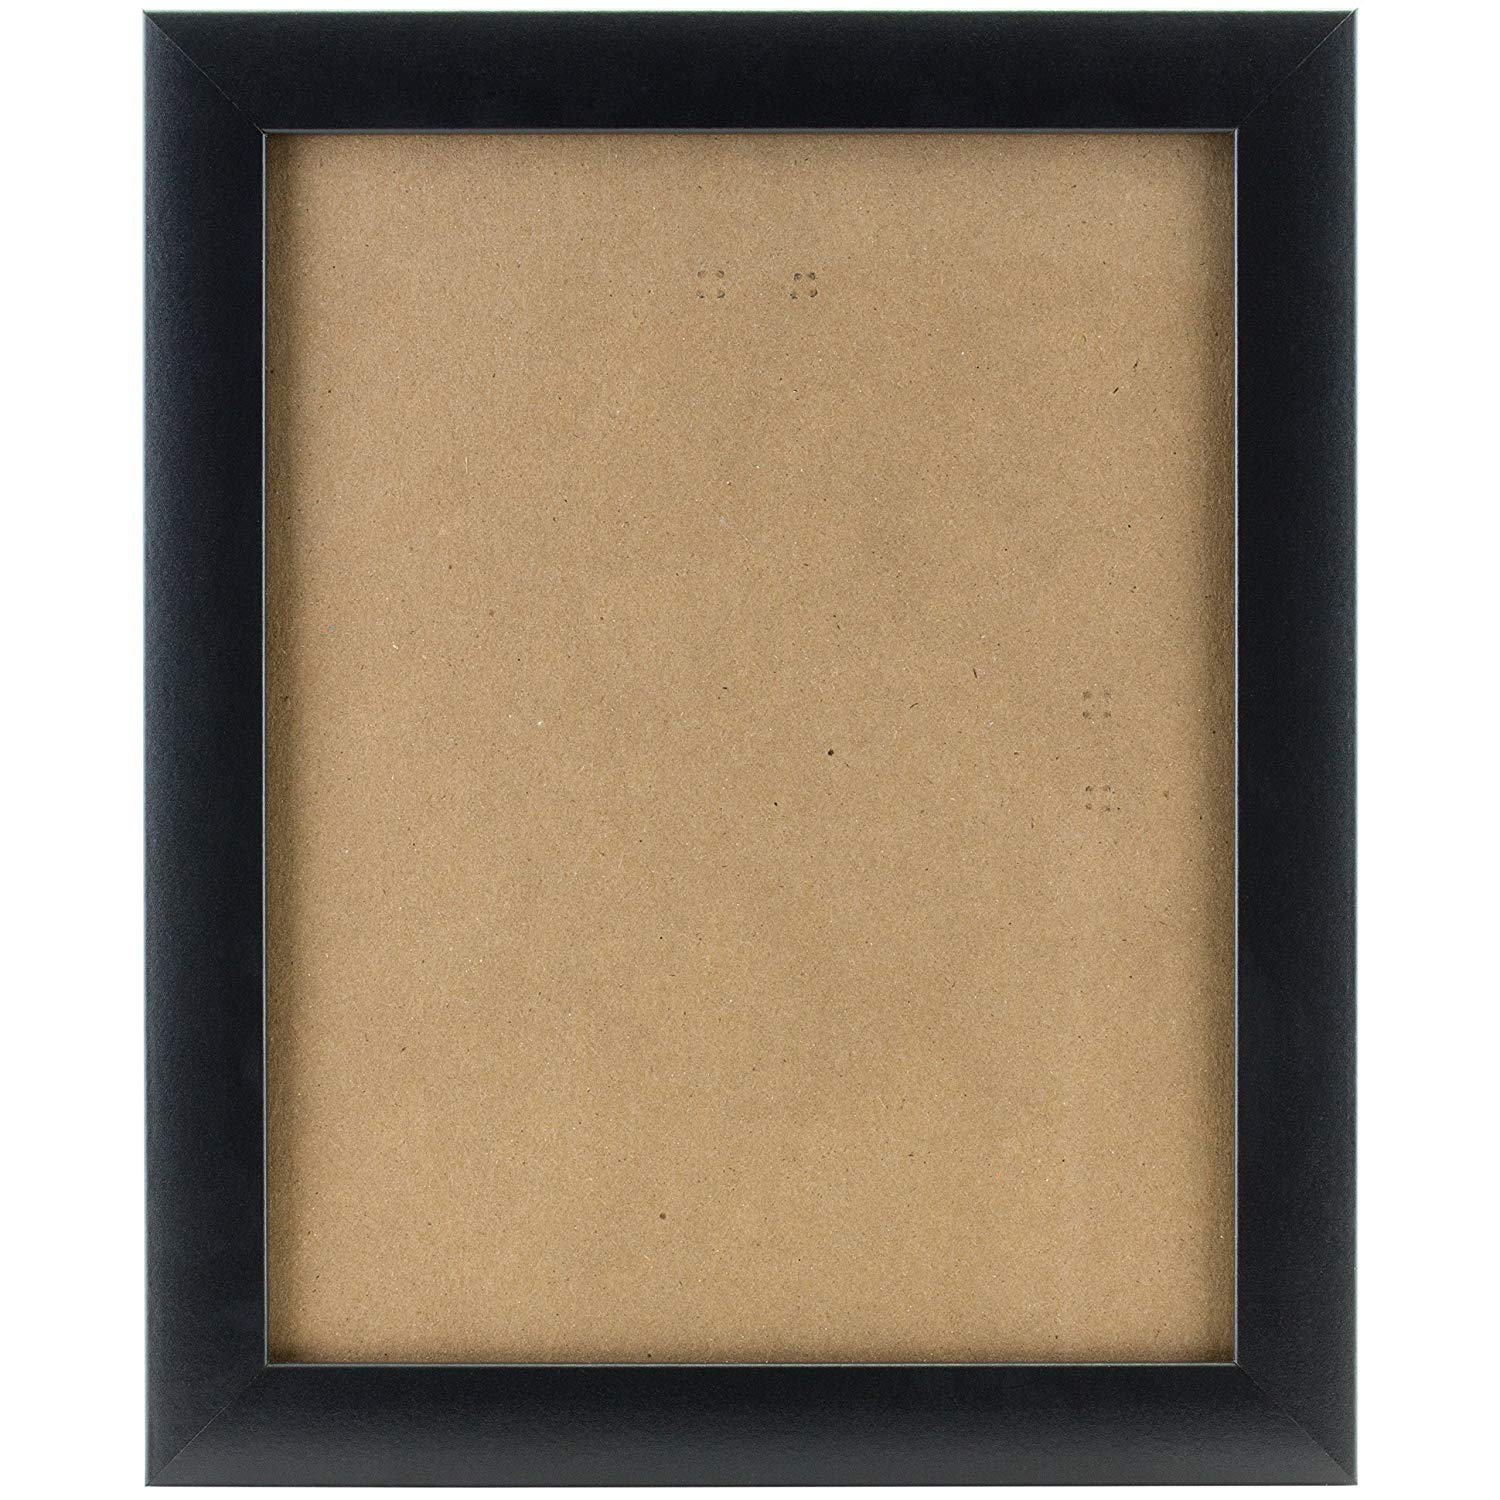 Cheap Picture Frames 18 X 24 Find Picture Frames 18 X 24 Deals On